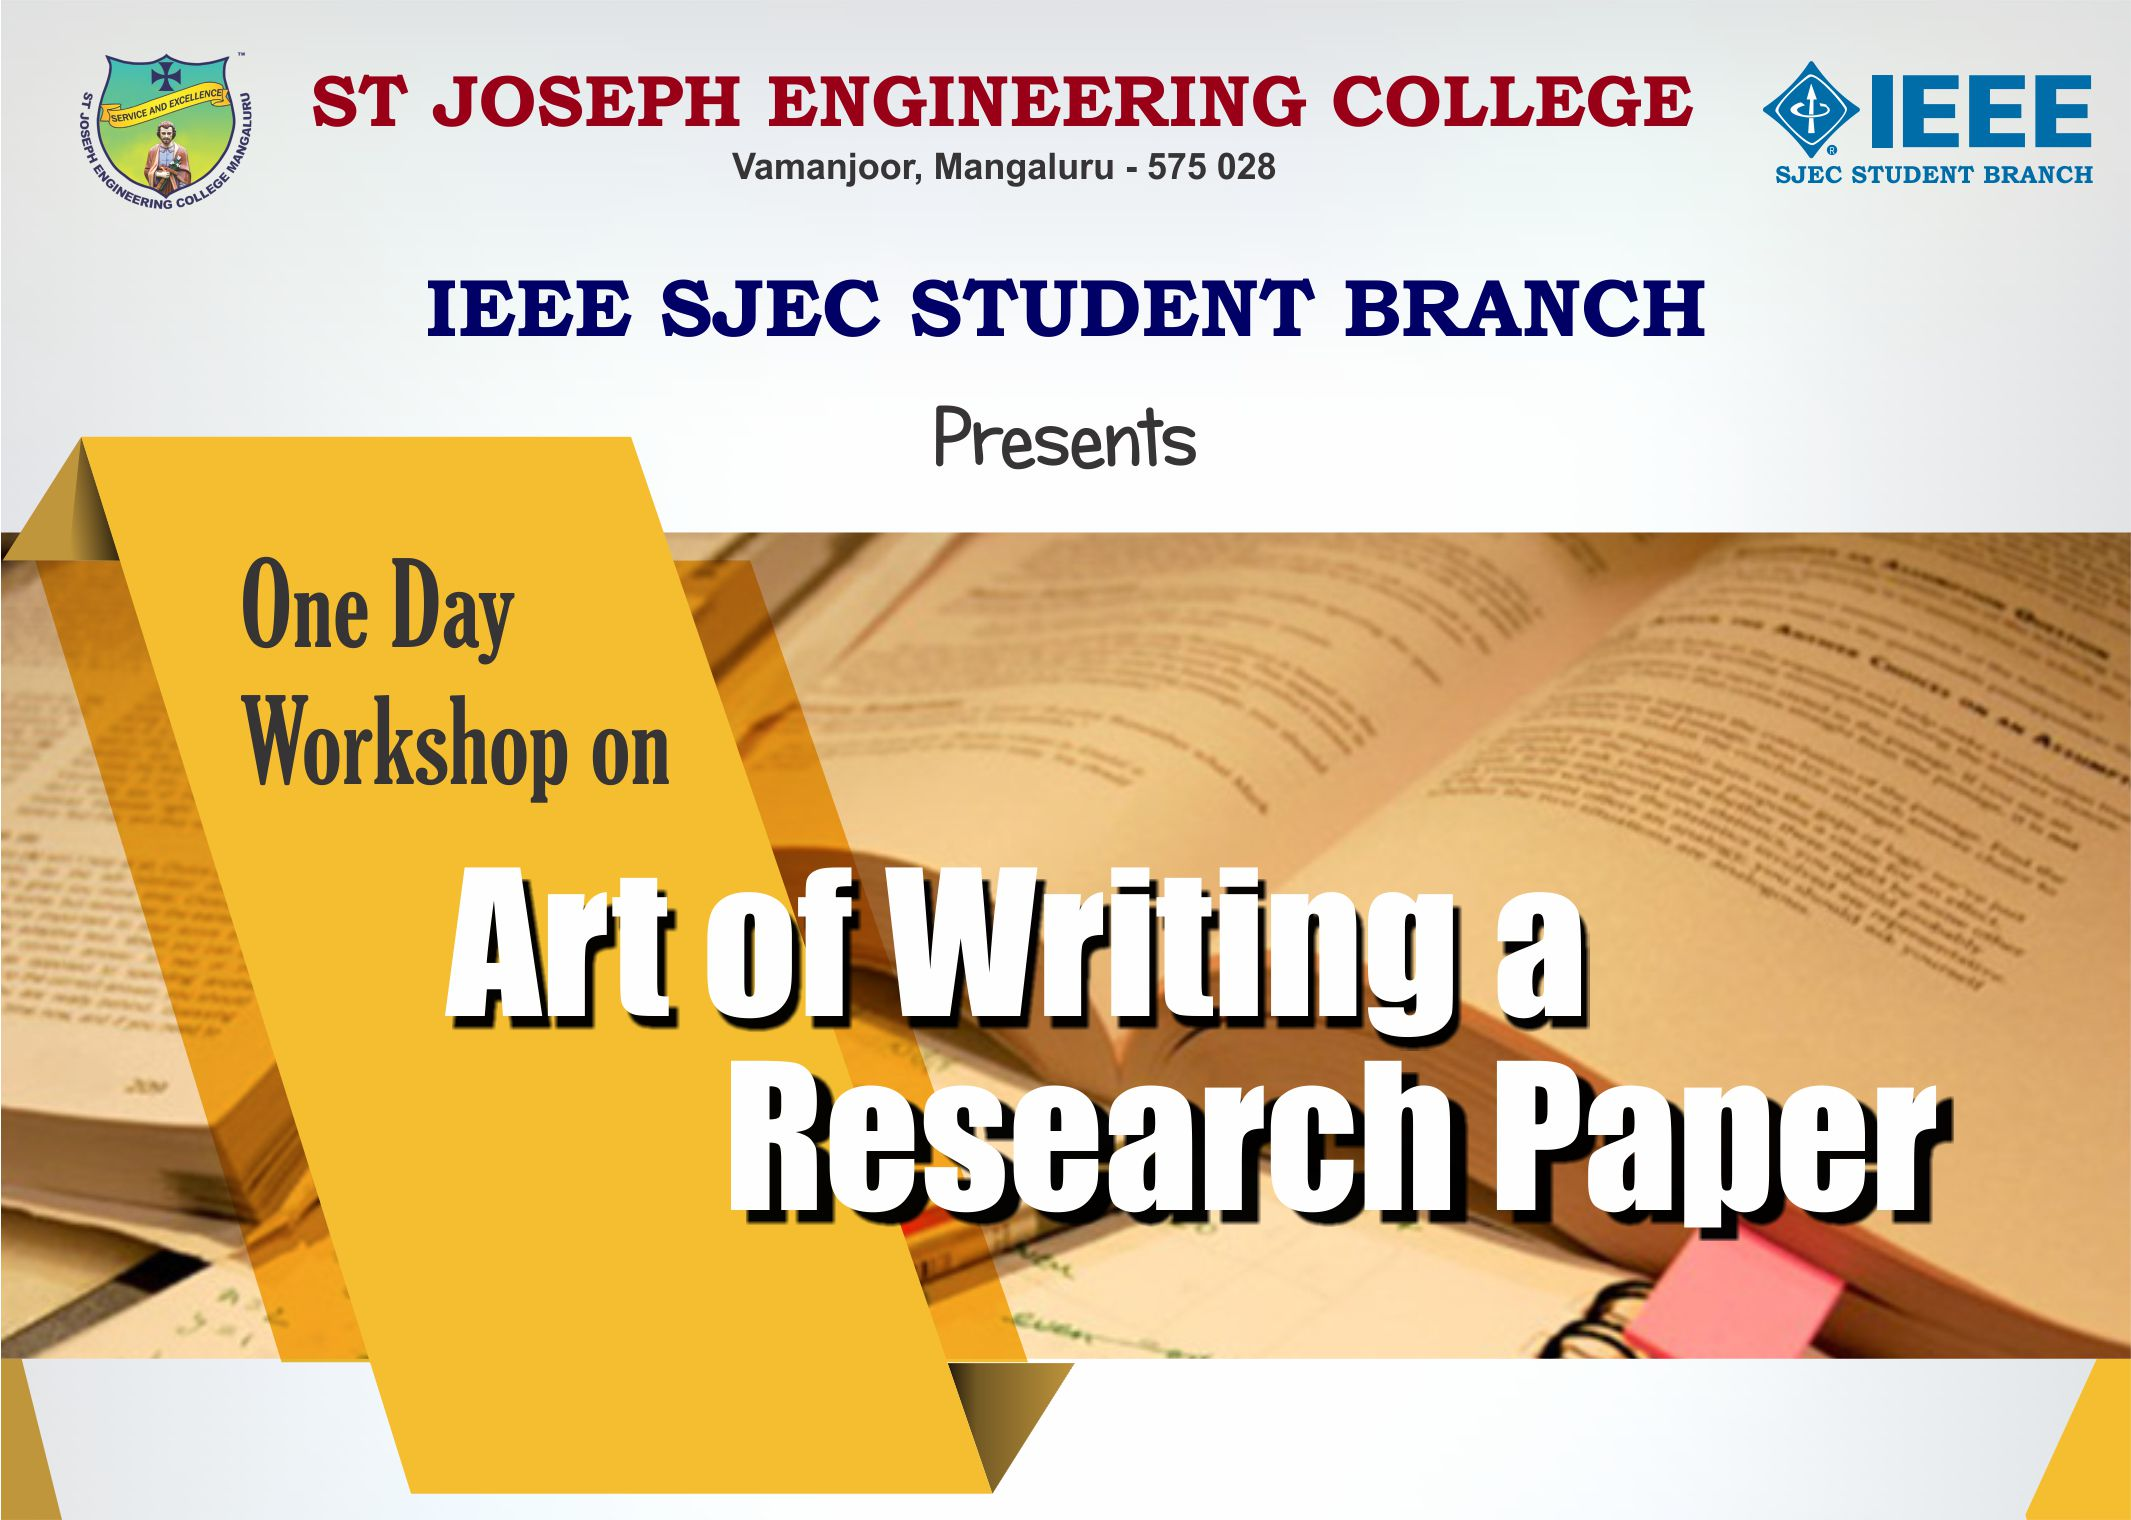 016 Writting Research Paper Workshop Dreaded A Example Of Proposal Apa Format Outline Writing Conclusion Full